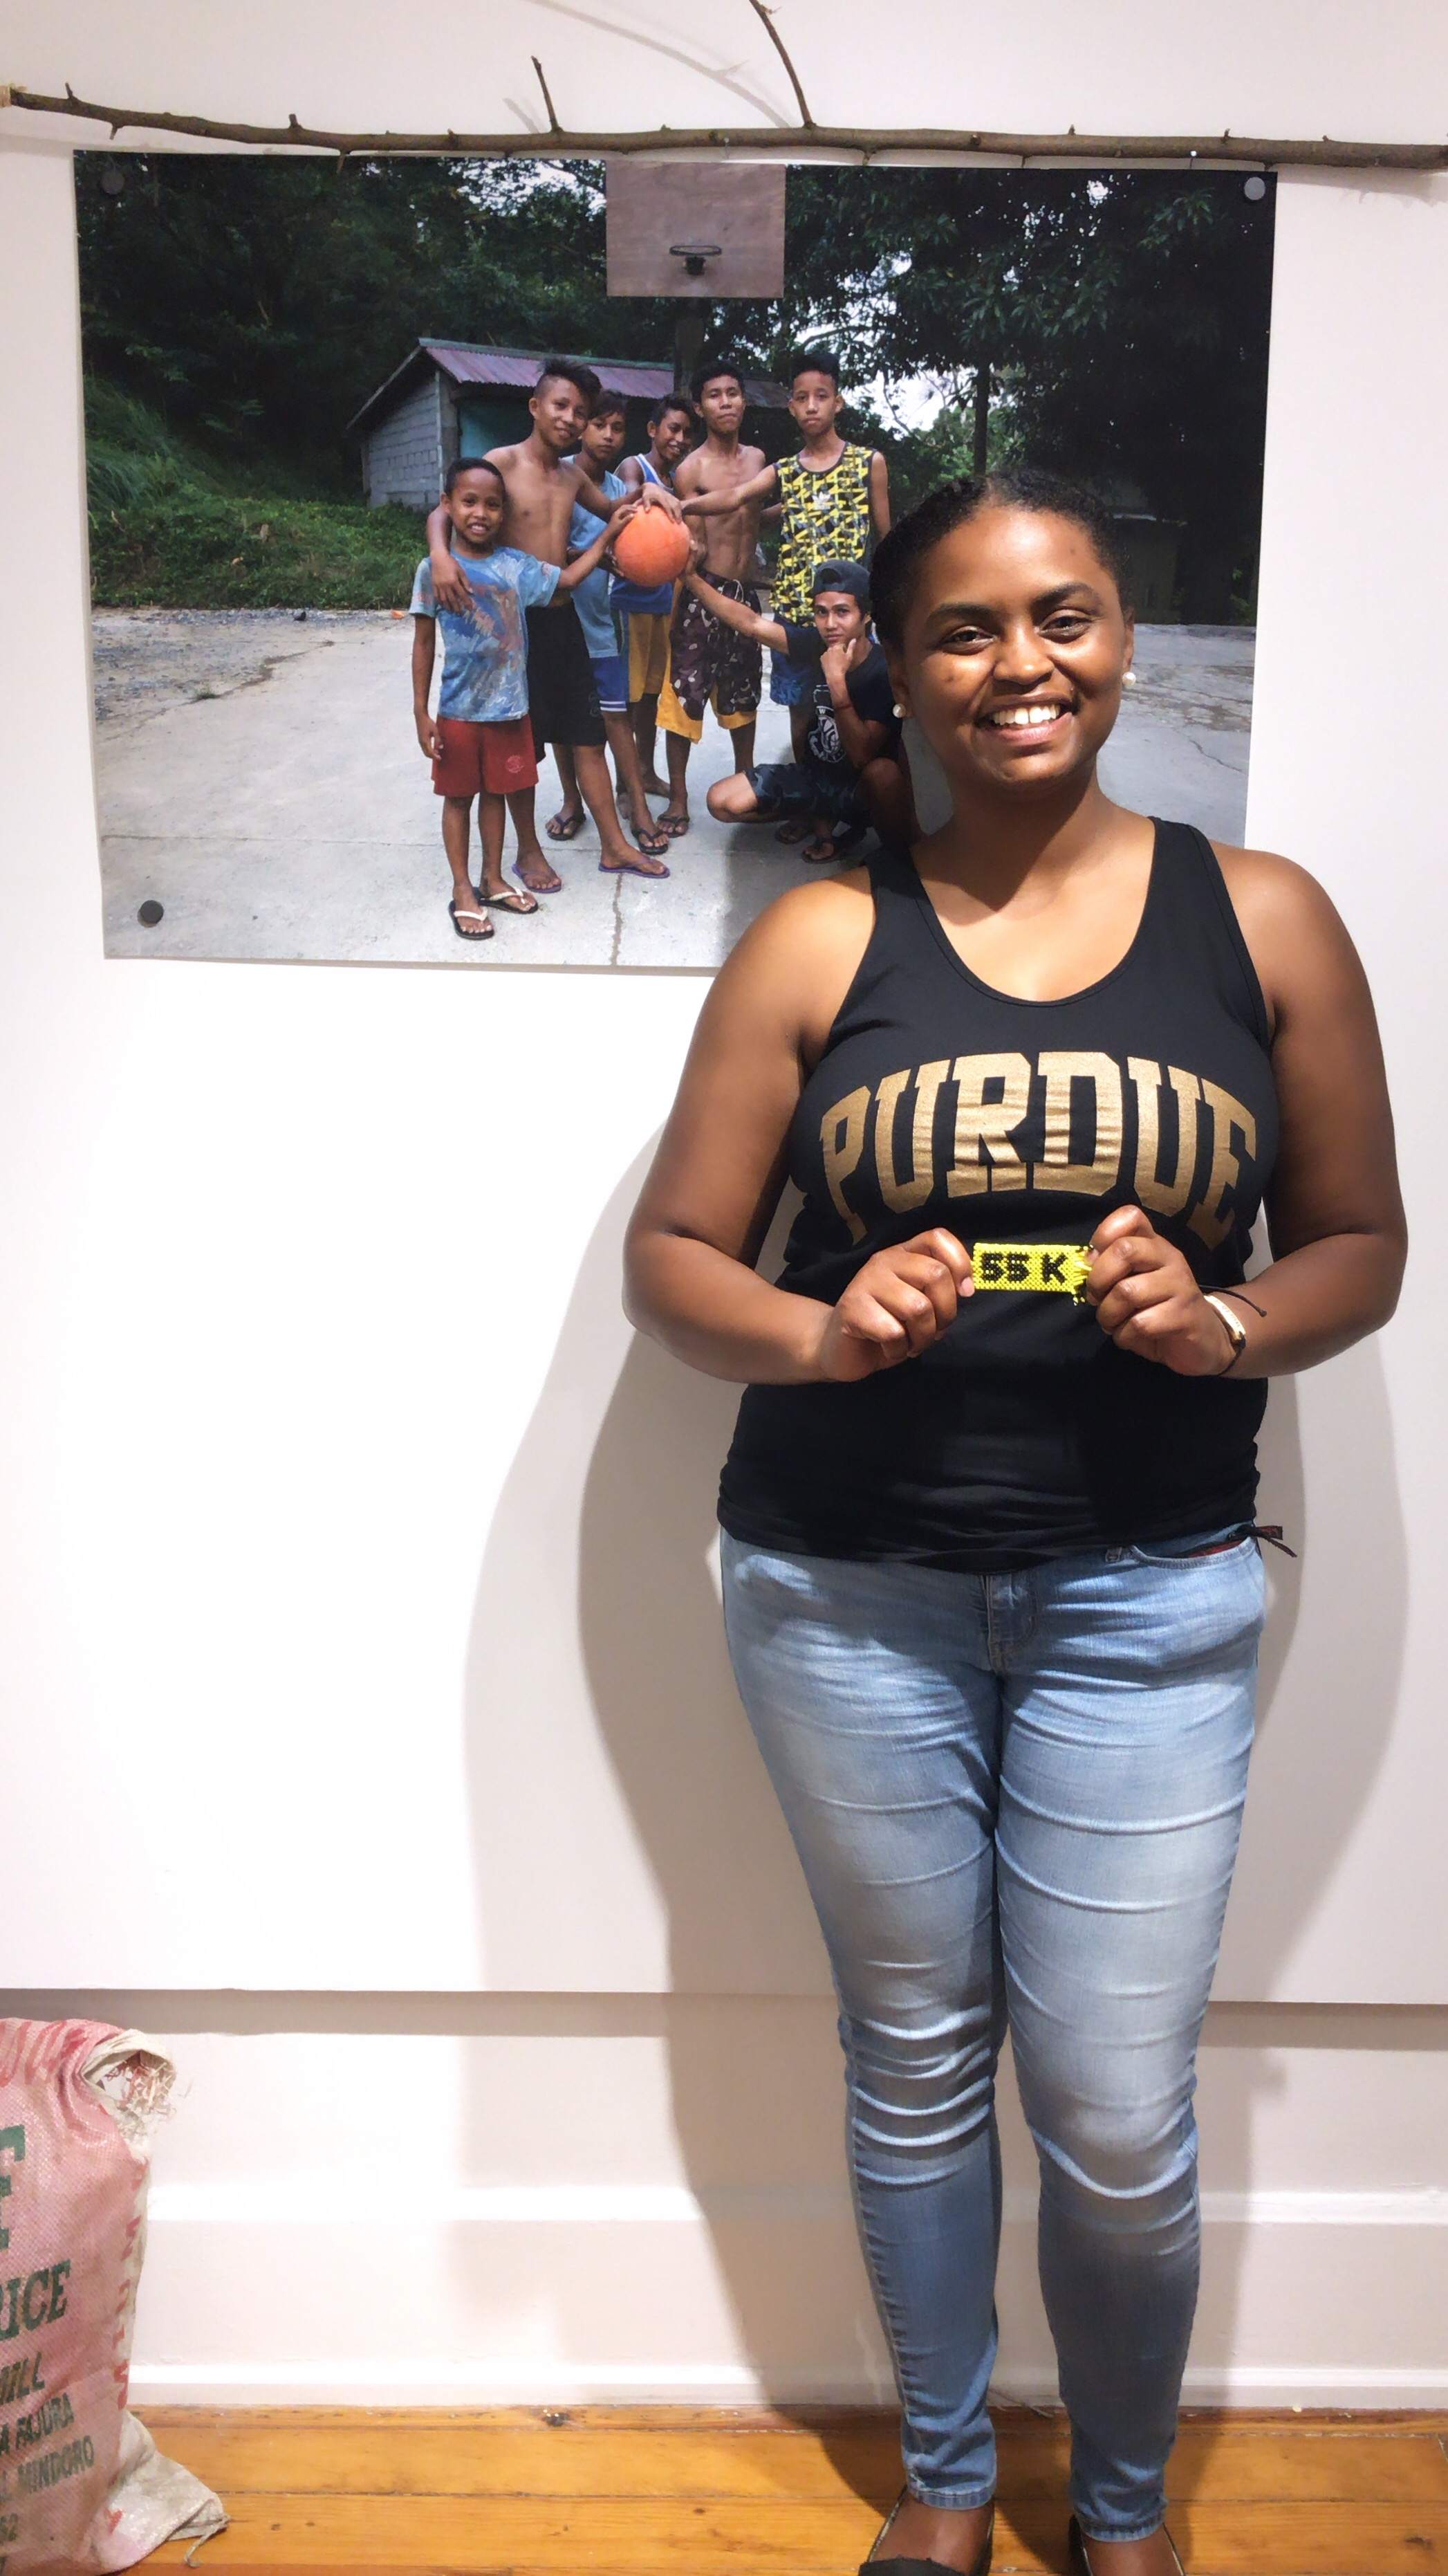 I attended a First Friday's art exhibit on 6.7.19. Though I do not remember the artist, this picture represents several of the dreams and intentions I set for my new journey!